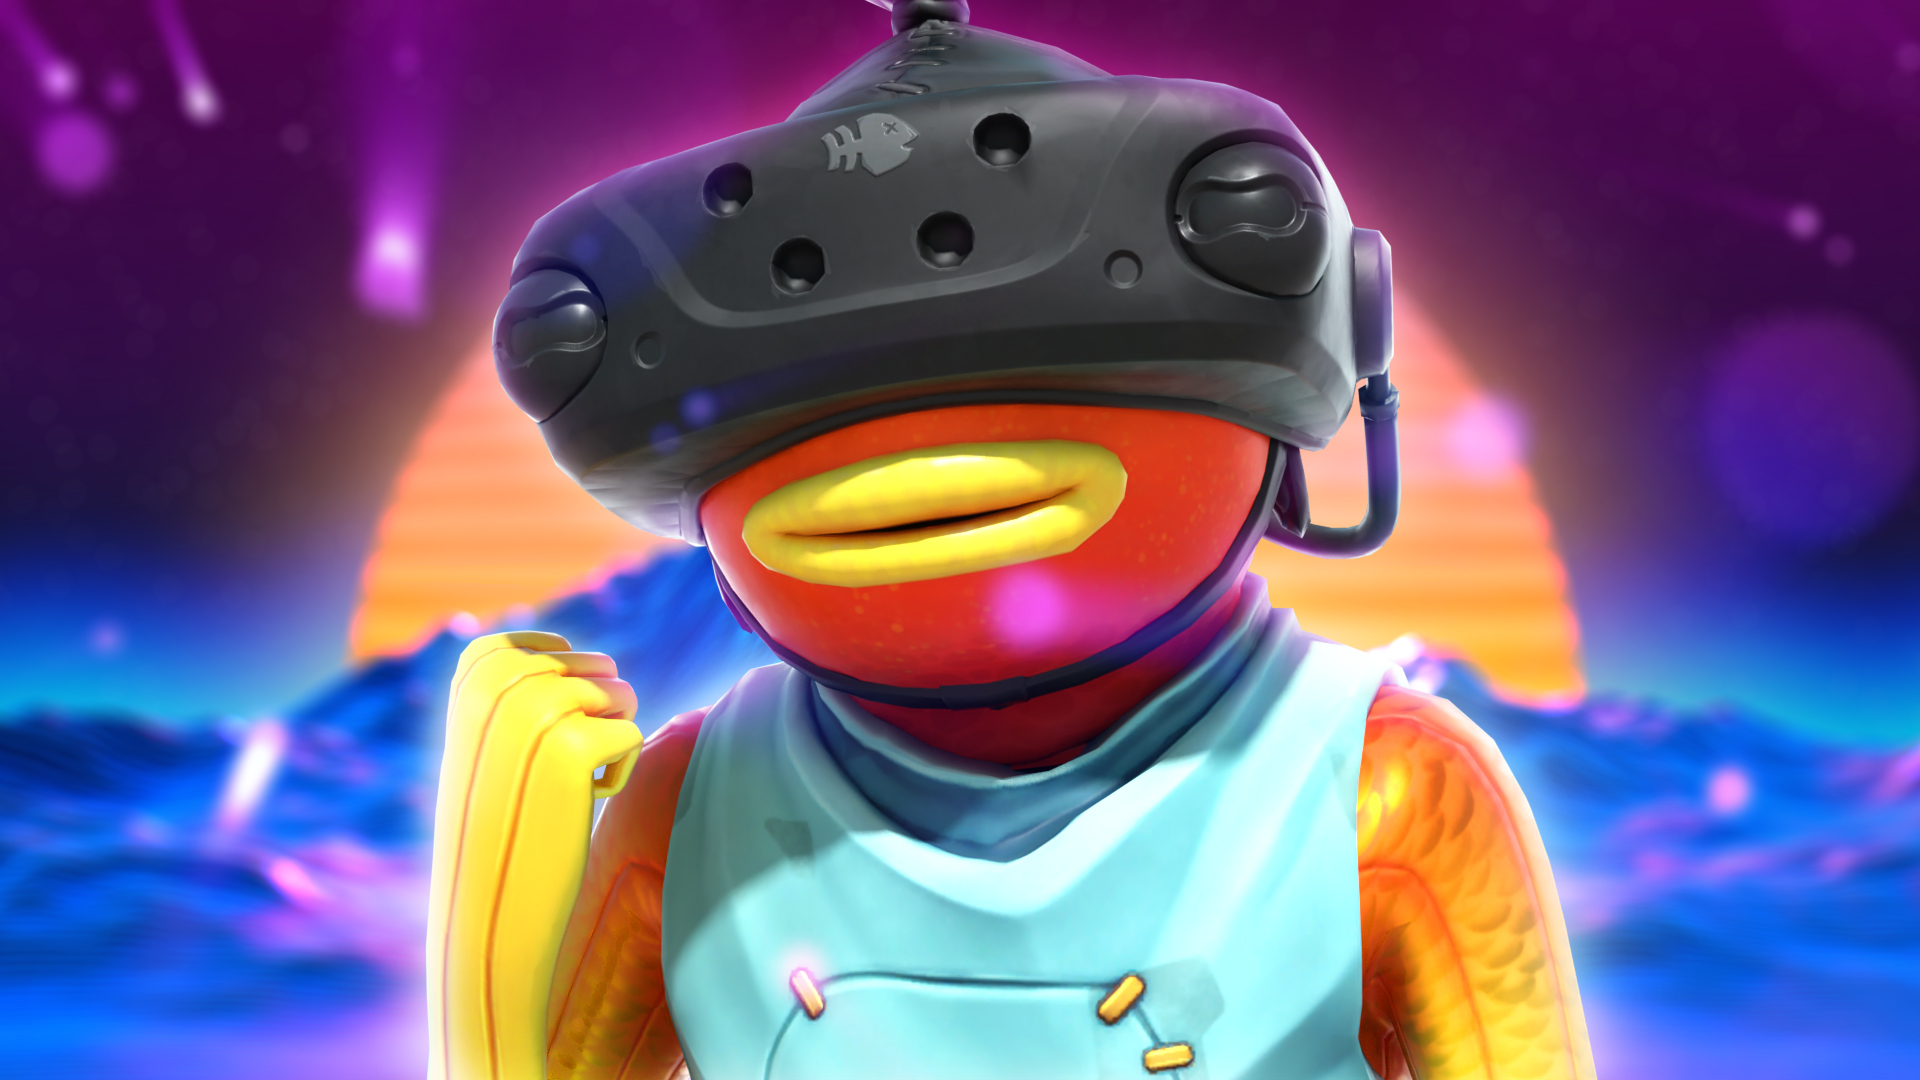 Tiko On Twitter Vr Fortnite In Chapter 2 Https T Co T59fbyck1f